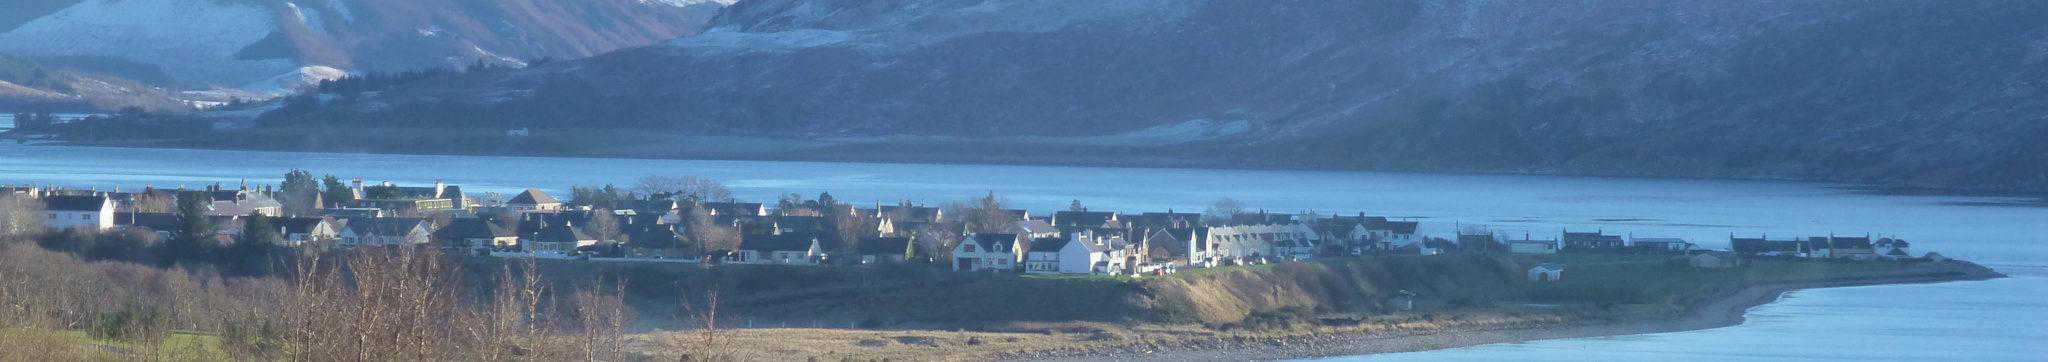 Photo of Ullapool village from Morefield Brae